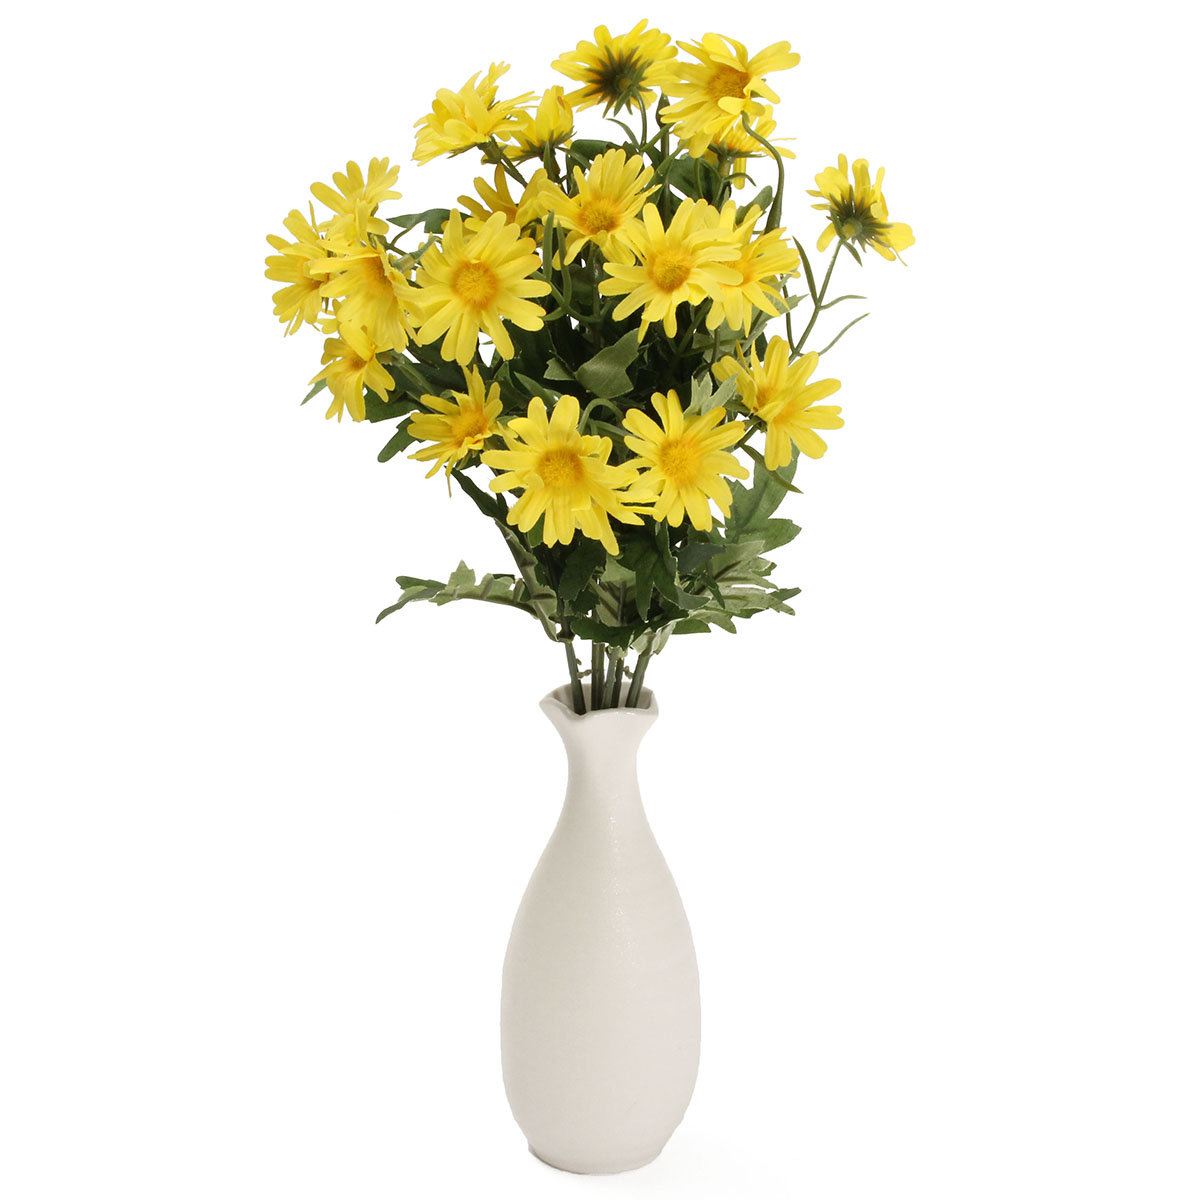 24 Heads Artificial Flower Daisy Bouquet Fake Flowers Blossom Party Wedding Table Decoration